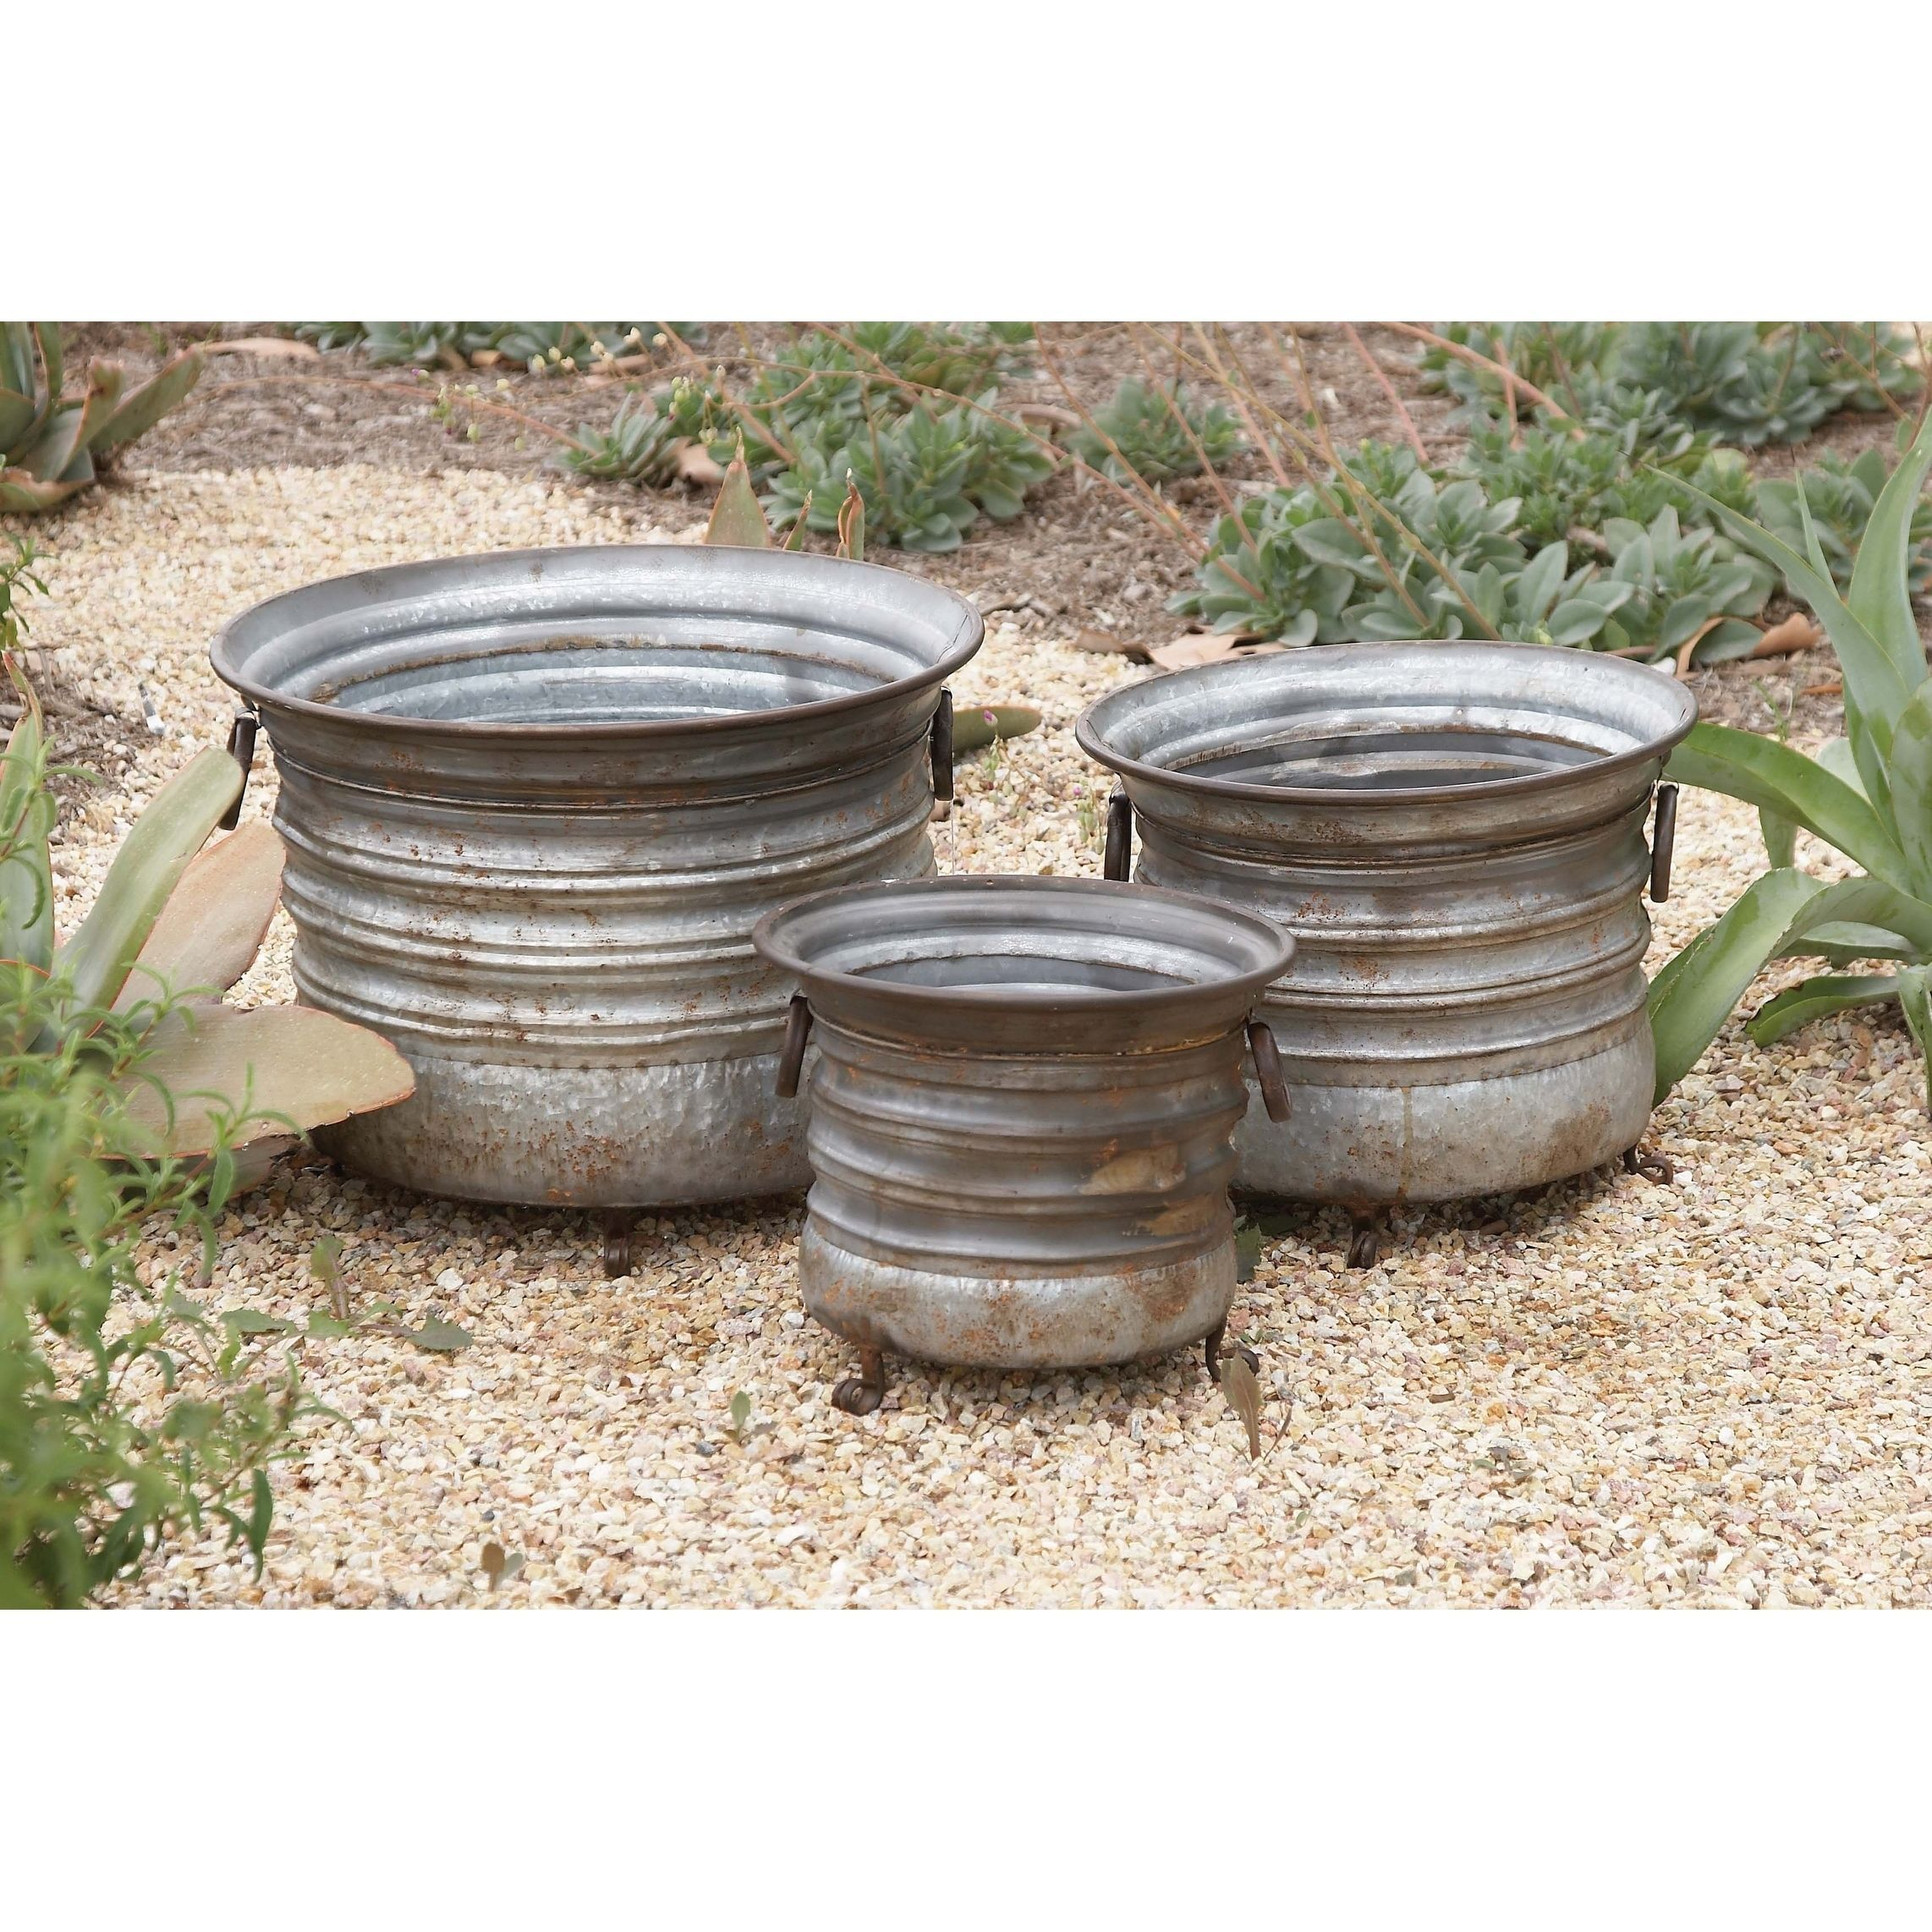 Set of 3 Rustic 11, 13, and 15 Inch Round Metal Pl